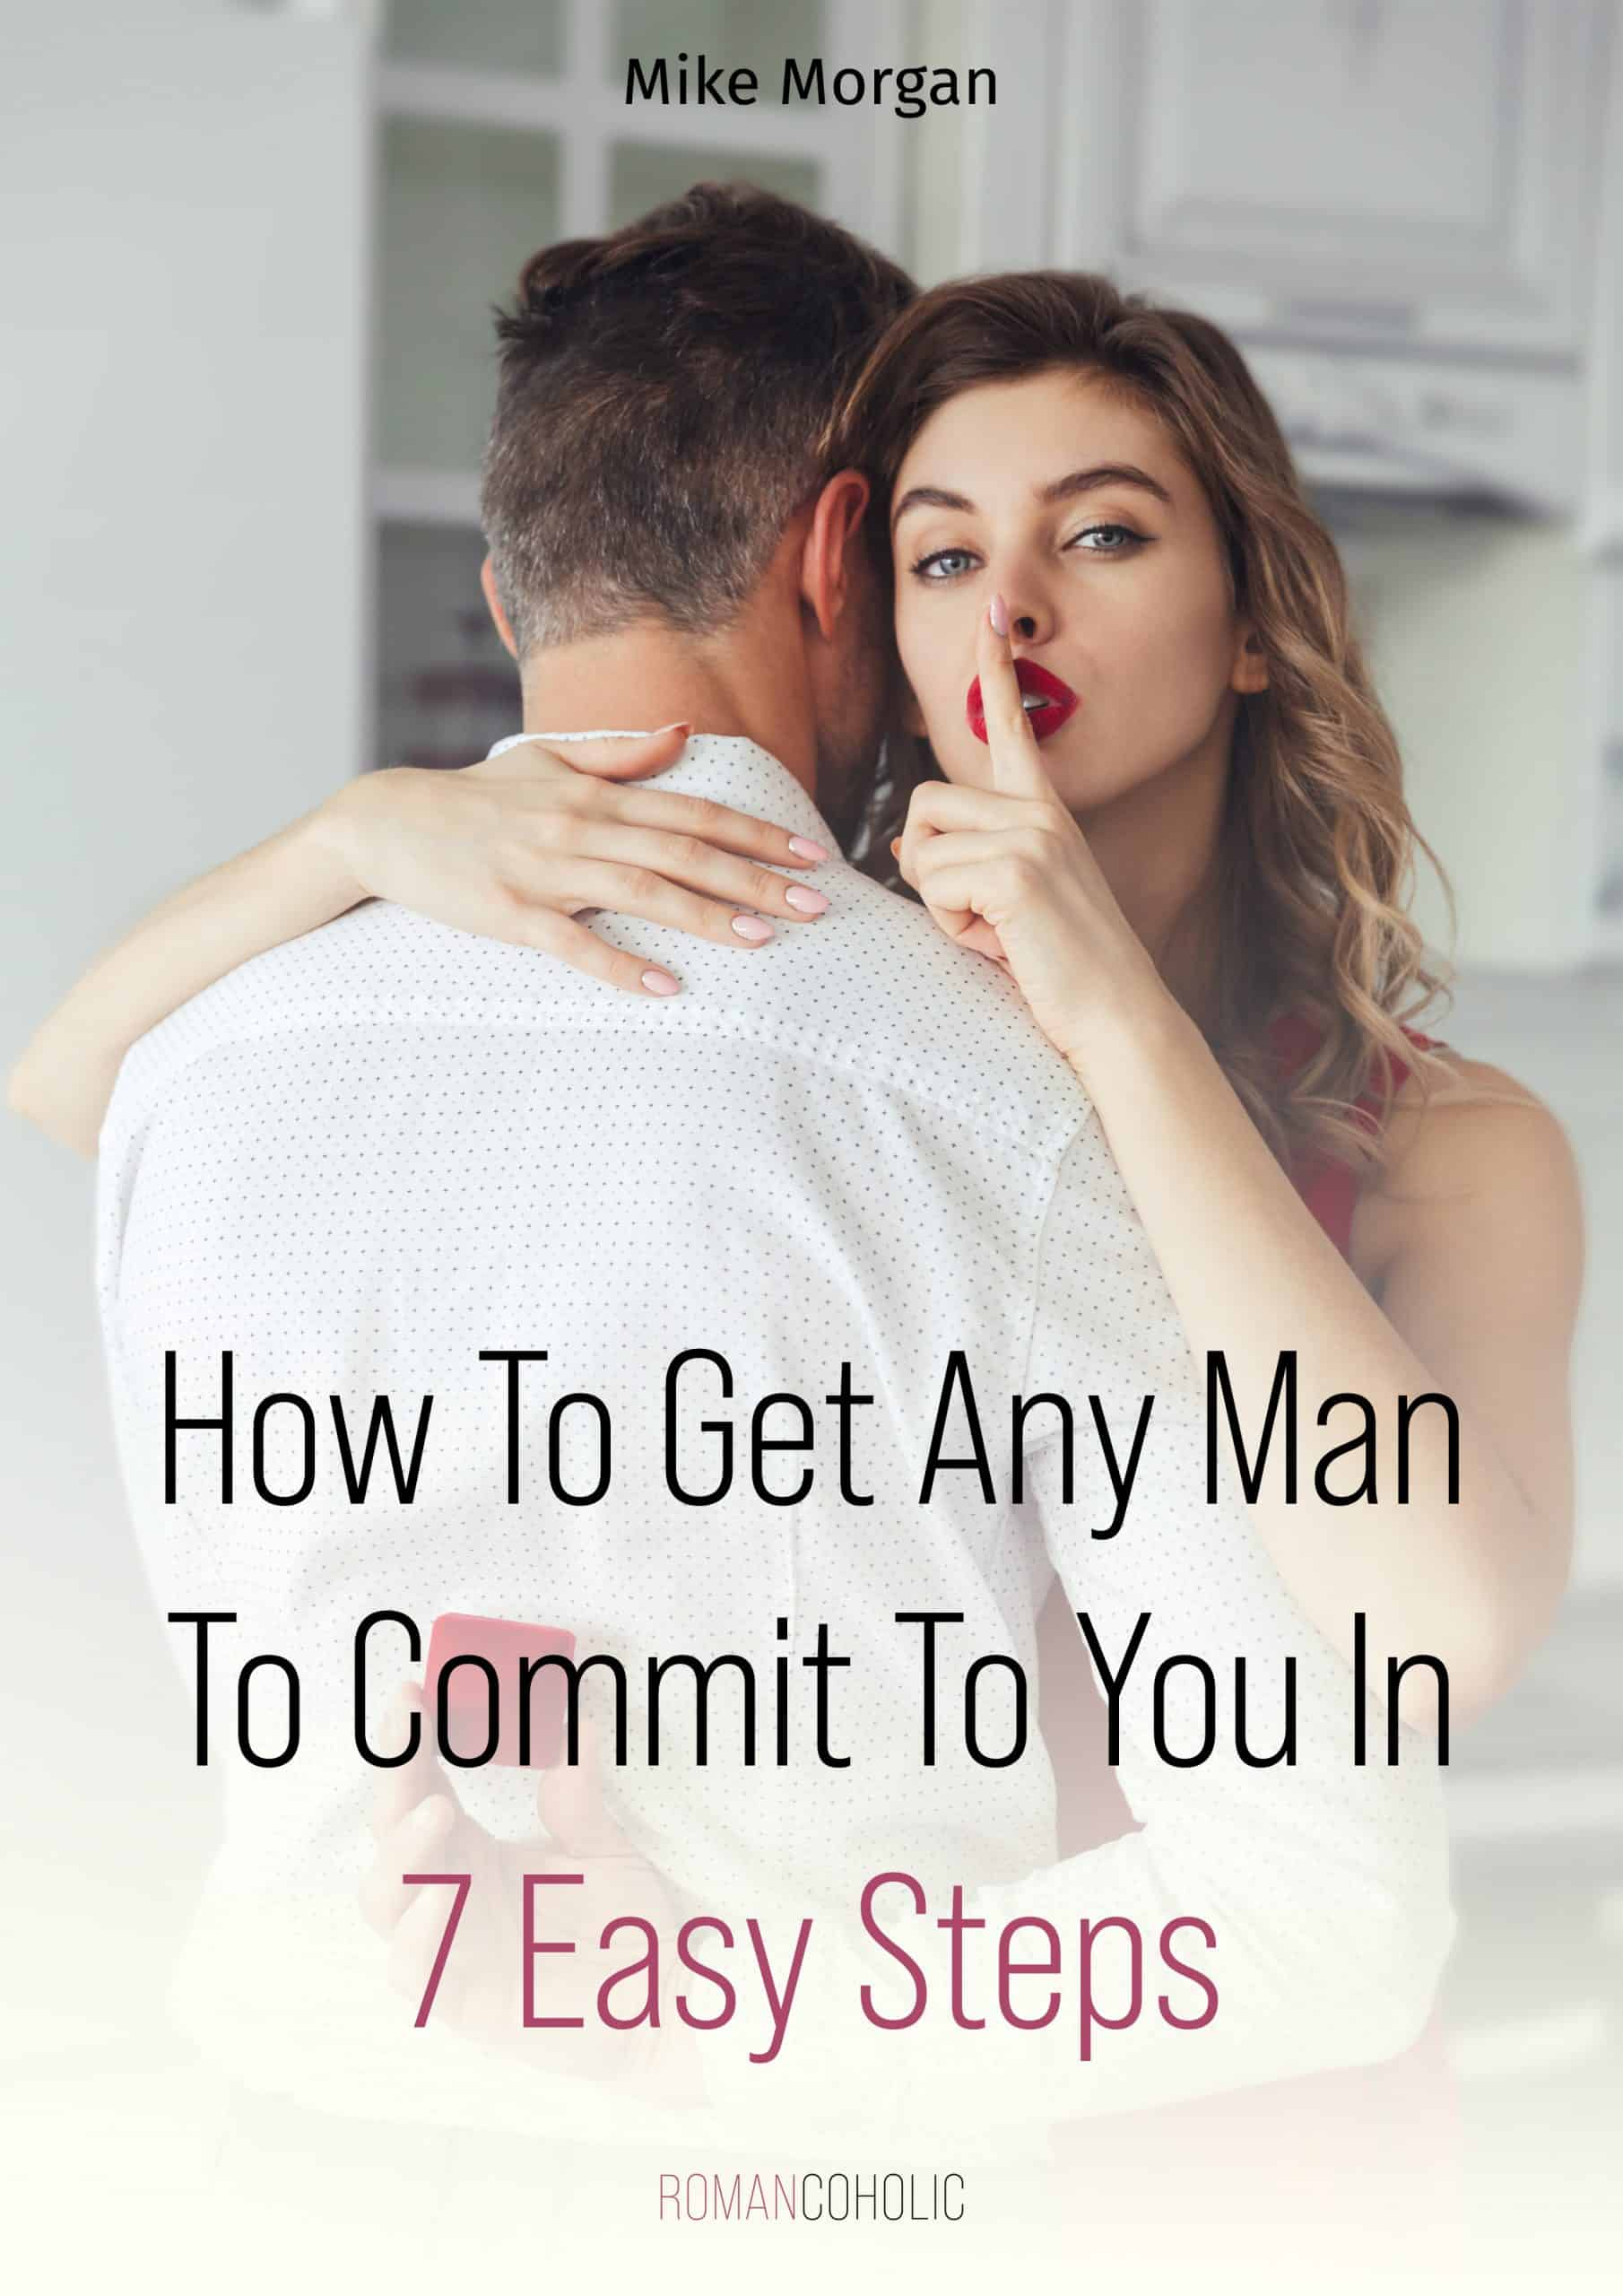 How to Get Any Man To Commit oin 7 Easy Steps Cover